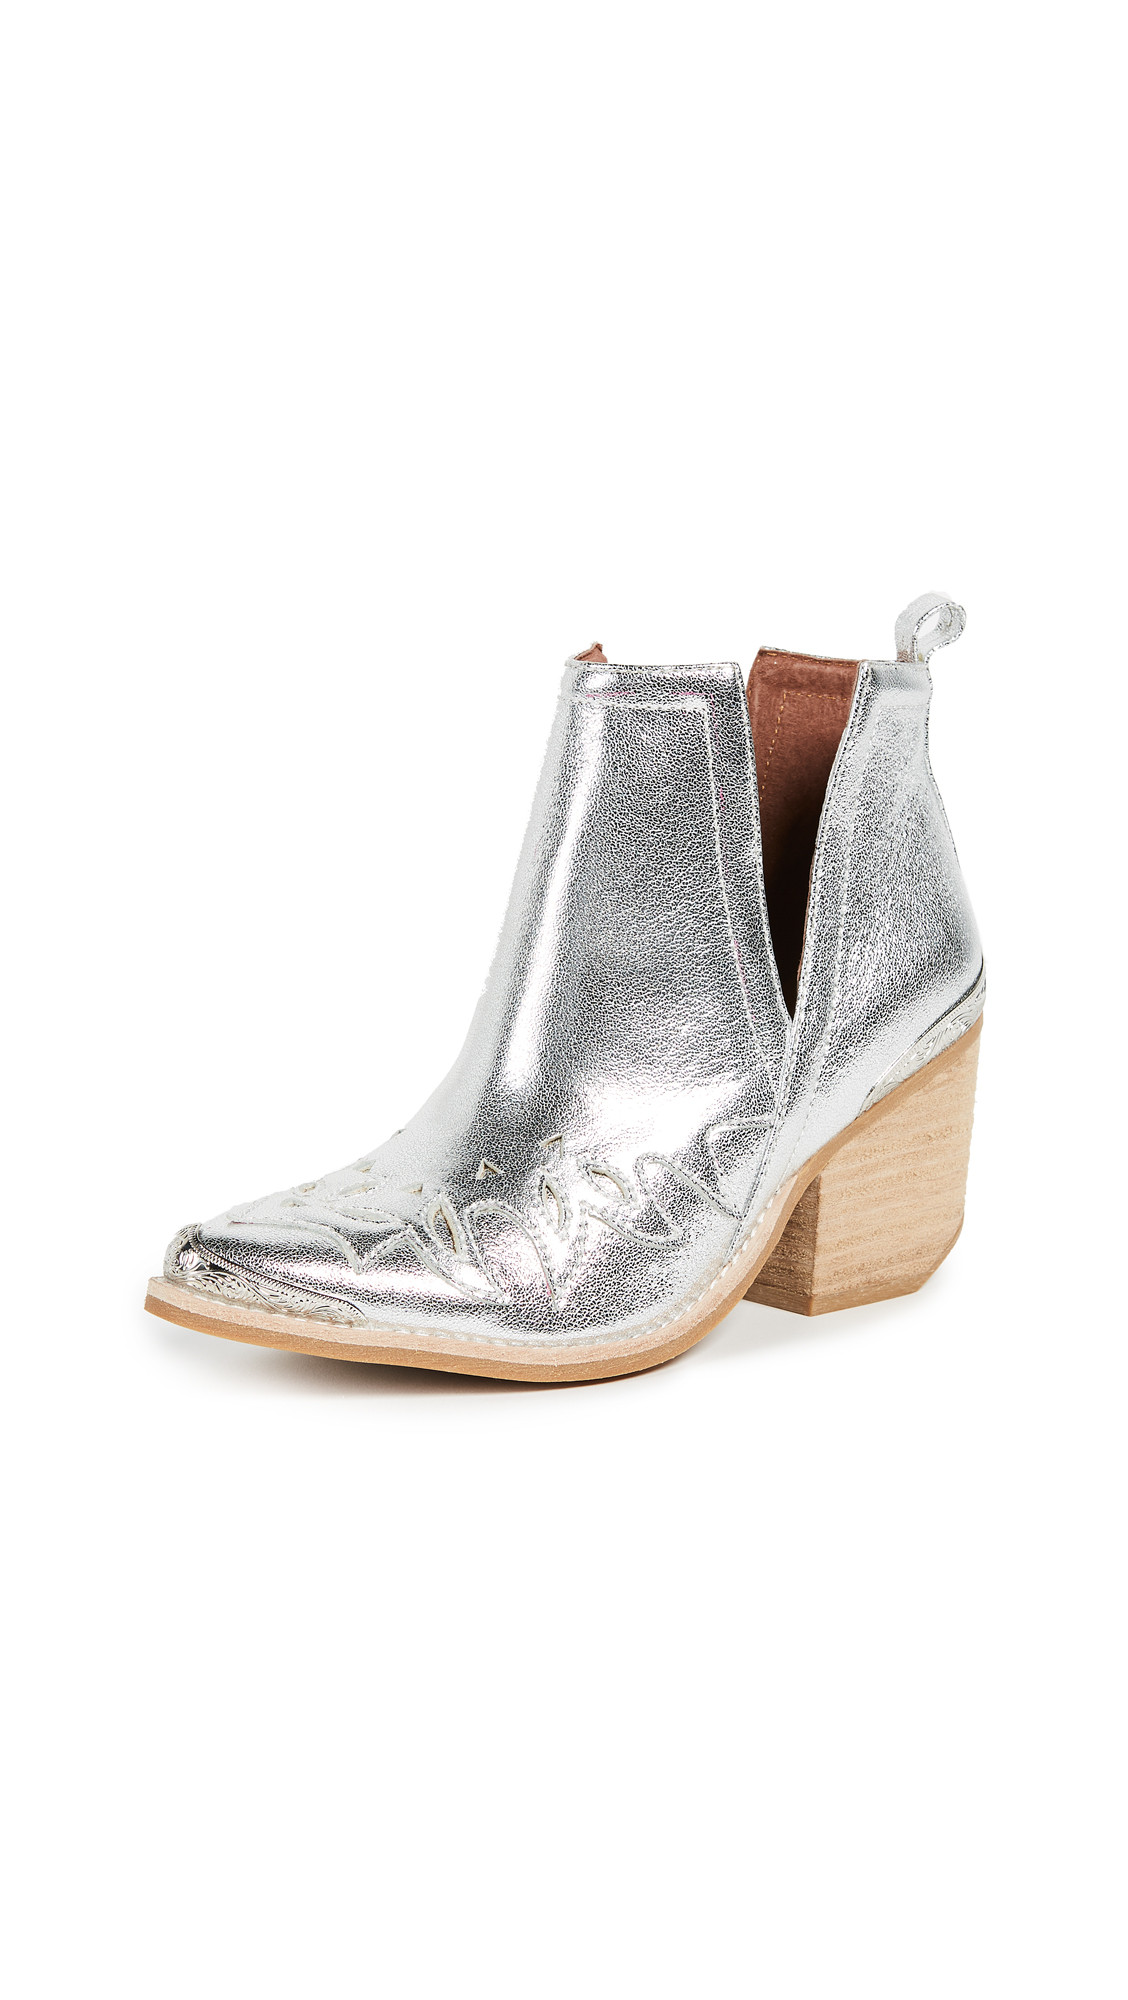 Jeffrey Campbell Olinda Point Toe Booties - Silver